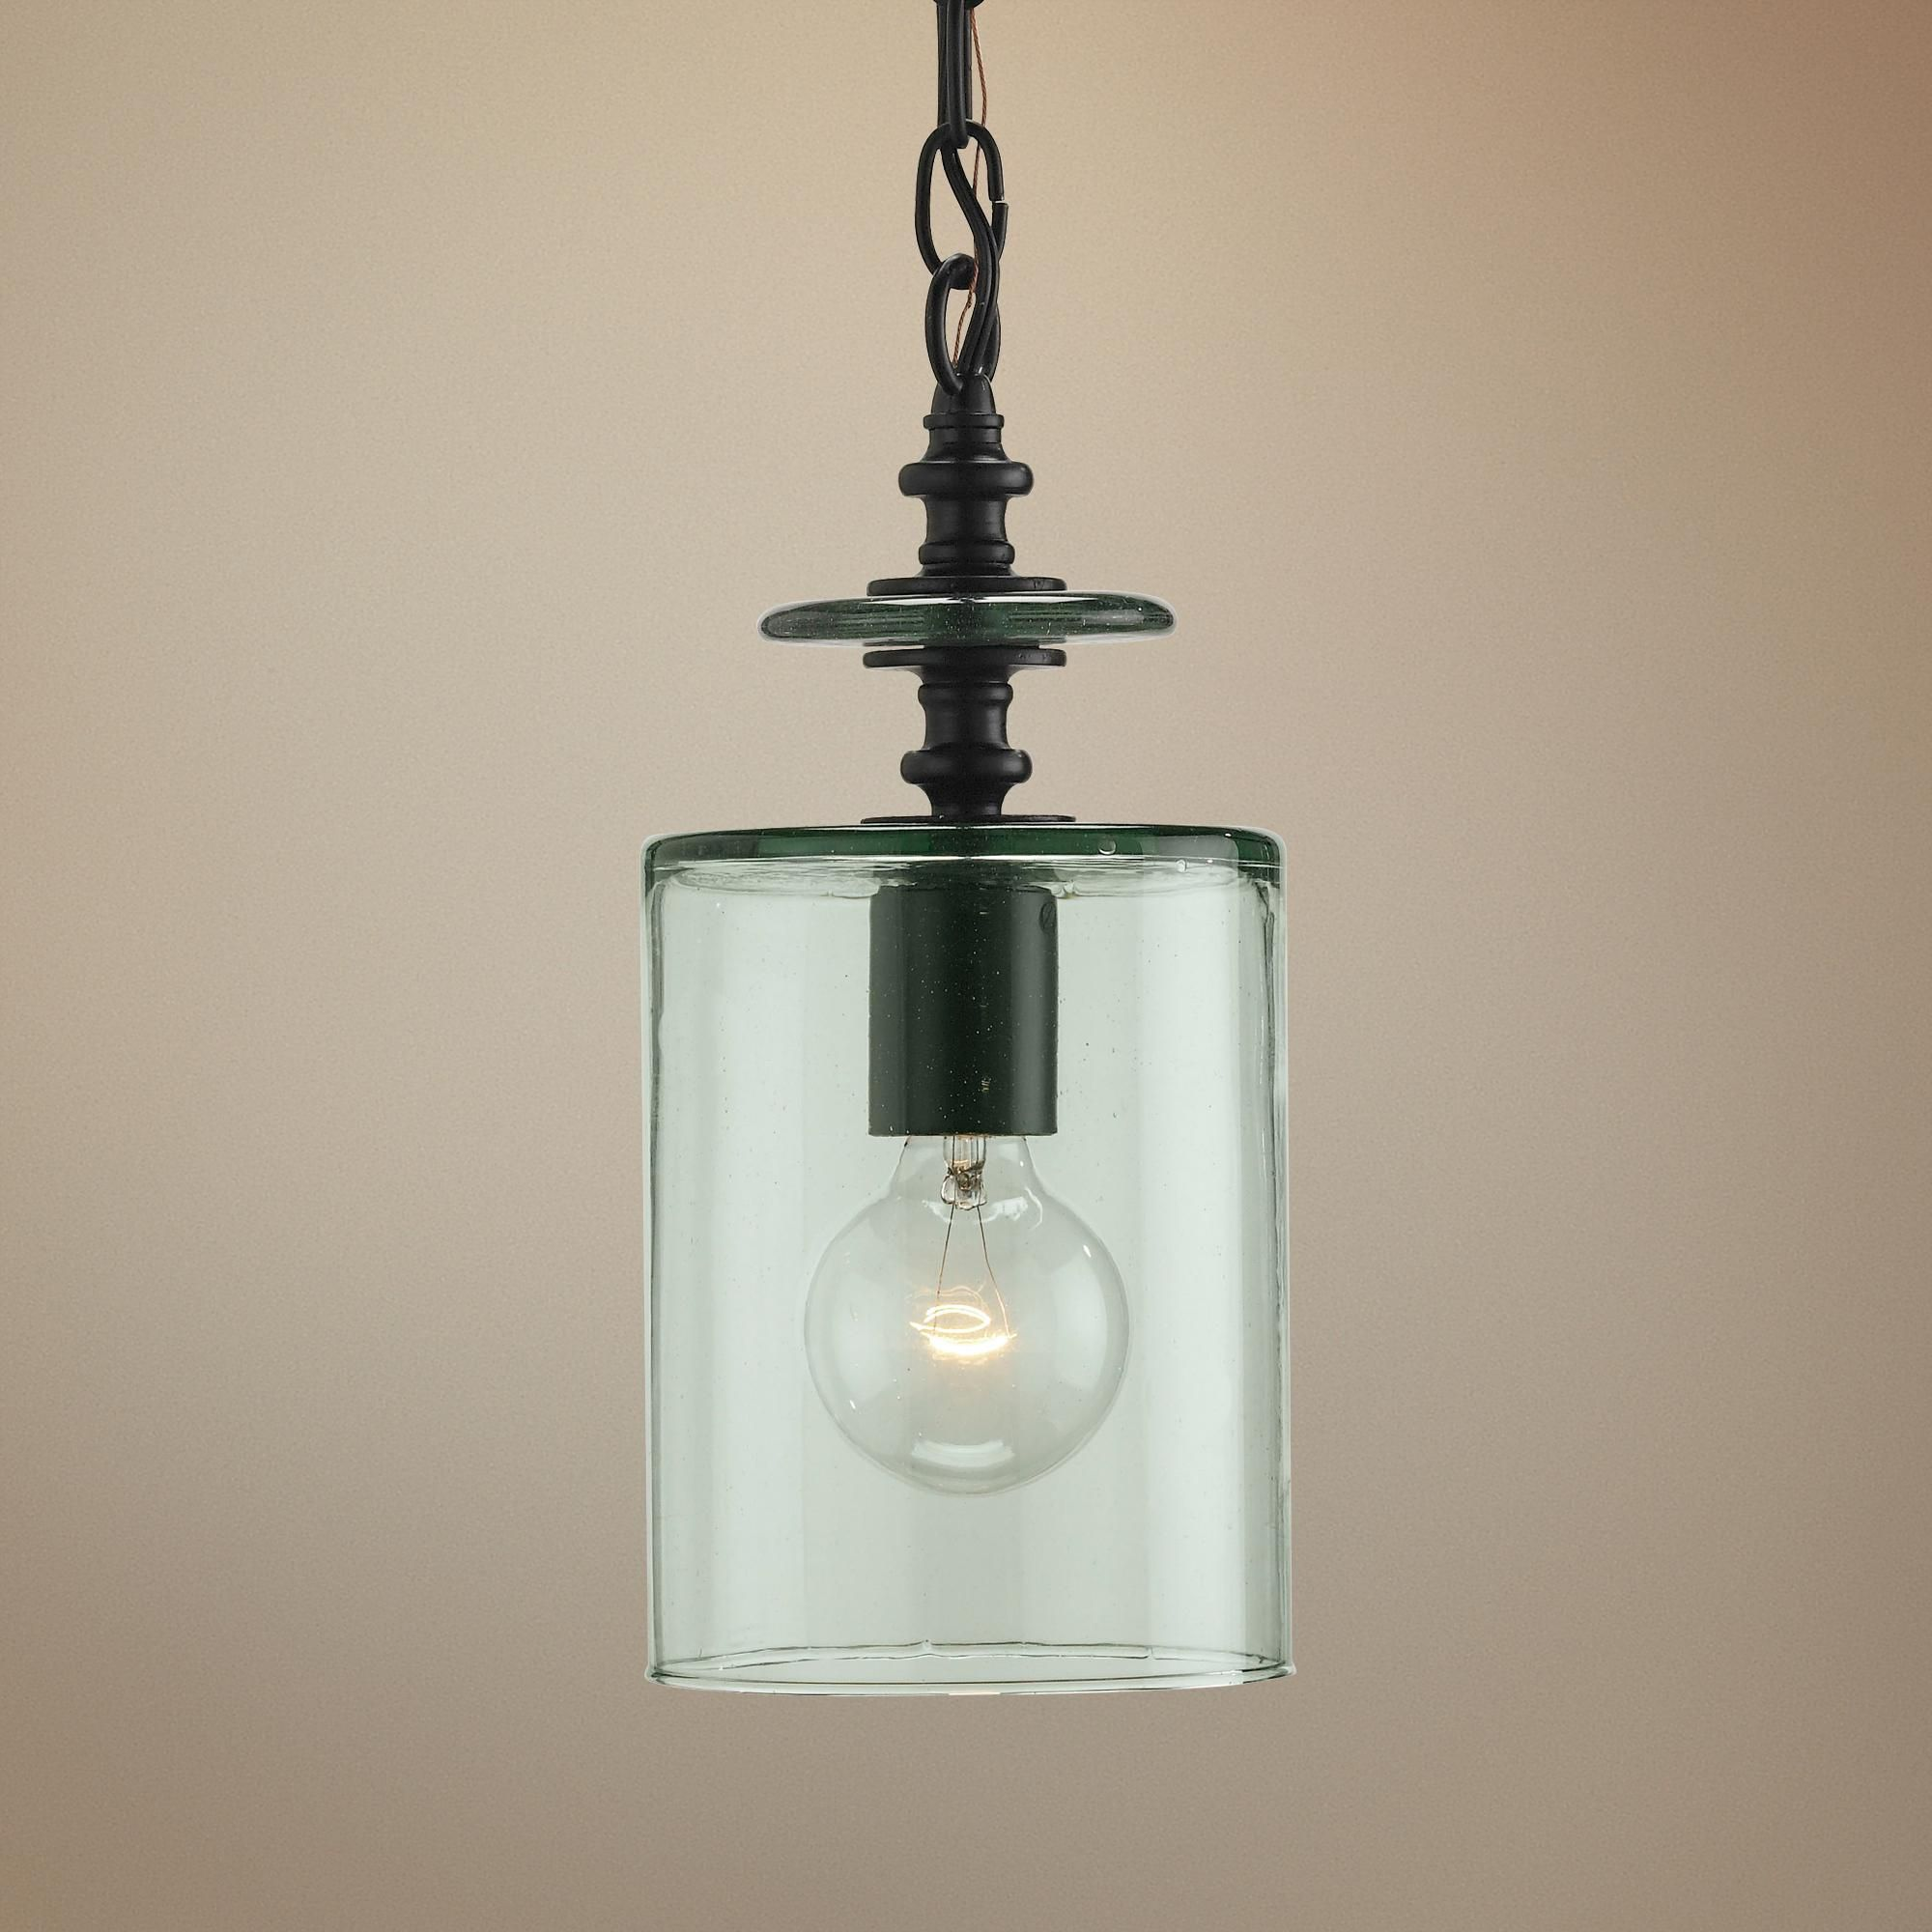 size lowes full black of pendant that light brushed lighting kitchen glass in fixture mini plug nickel chandeliers hanging shades lights art necklace